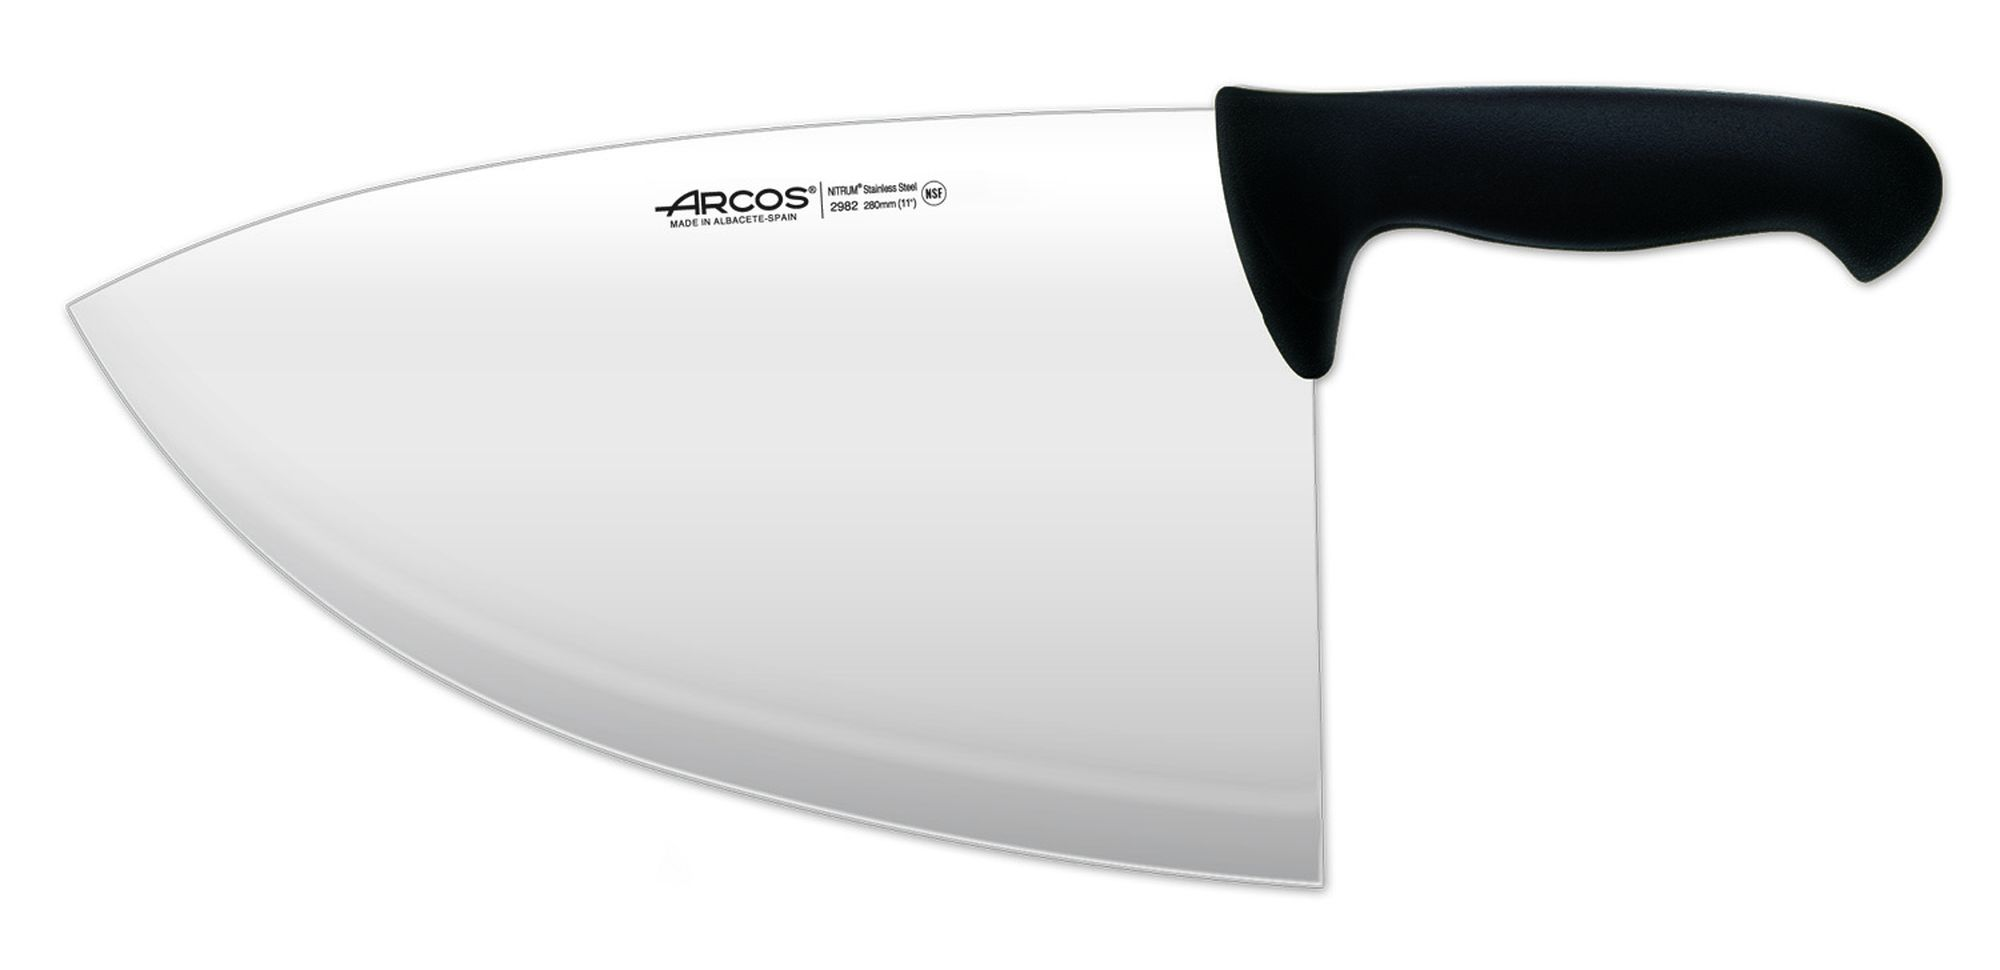 Cleaver Arcos ref.: 298225